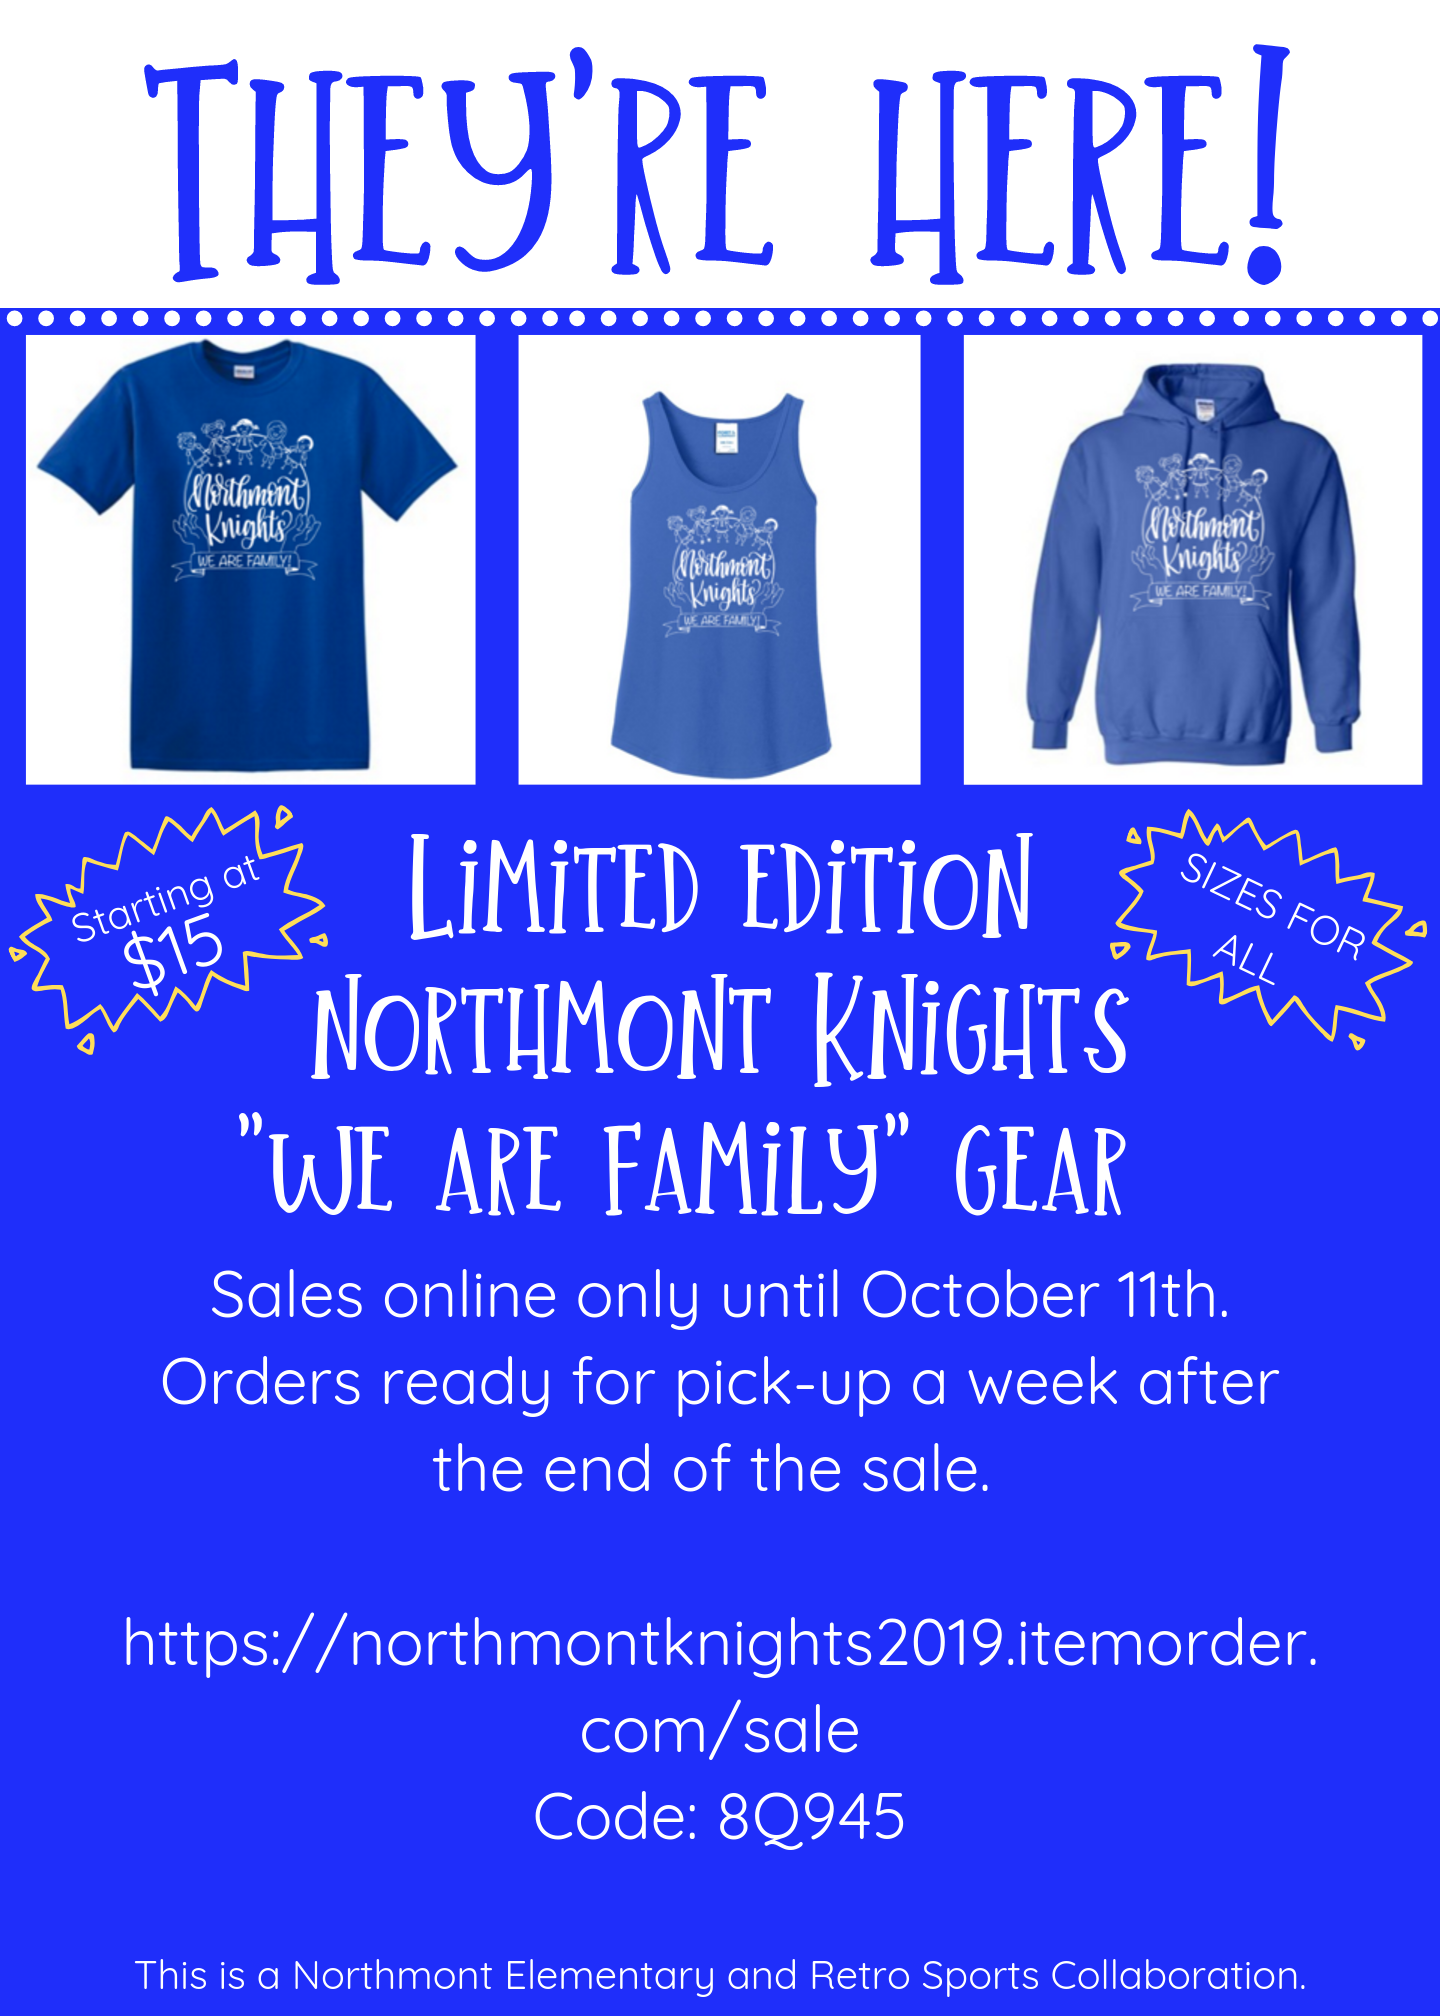 Northmont Knights – We Are Family Gear